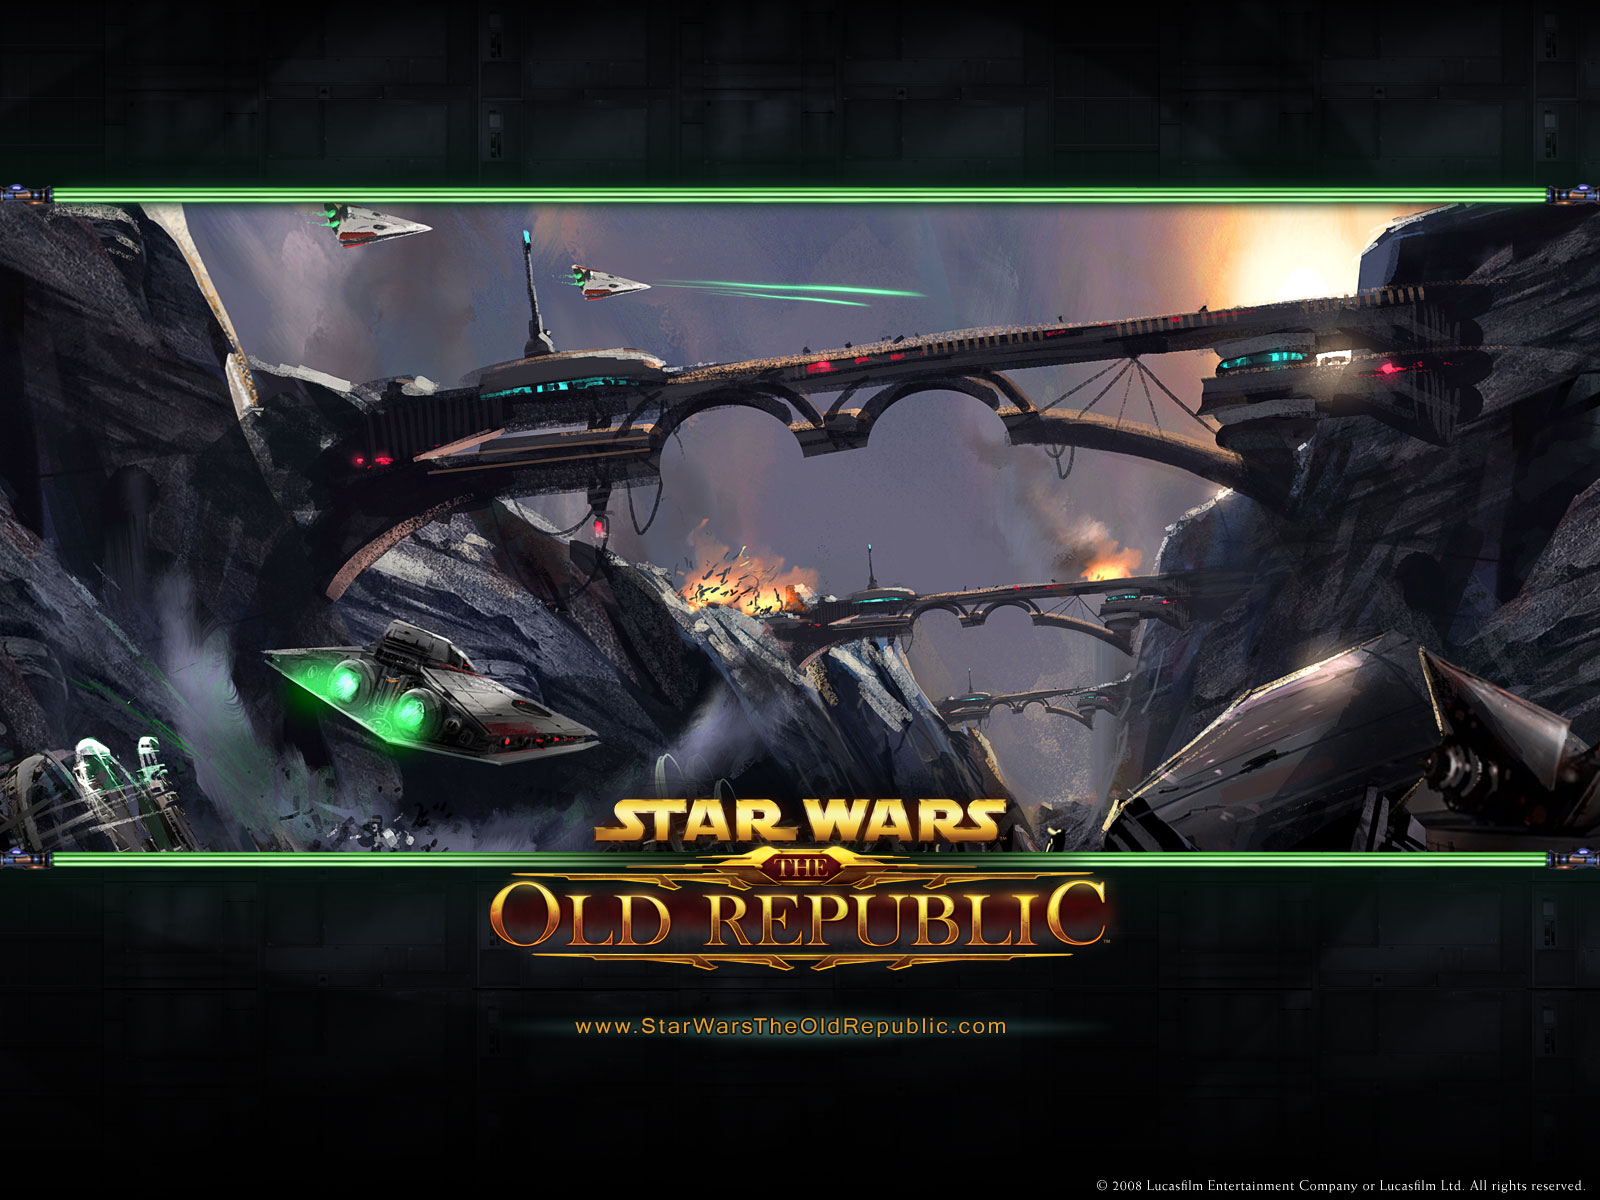 http://1.bp.blogspot.com/-L4AyW2uML7Q/TkyIpLVgv4I/AAAAAAAAAKs/E1bbal4HcfI/s1600/Star+Wars+The+Old+Republic+Wallpaper+%2528www.gameswallpapersatoz.blogspot.com%25292.jpg